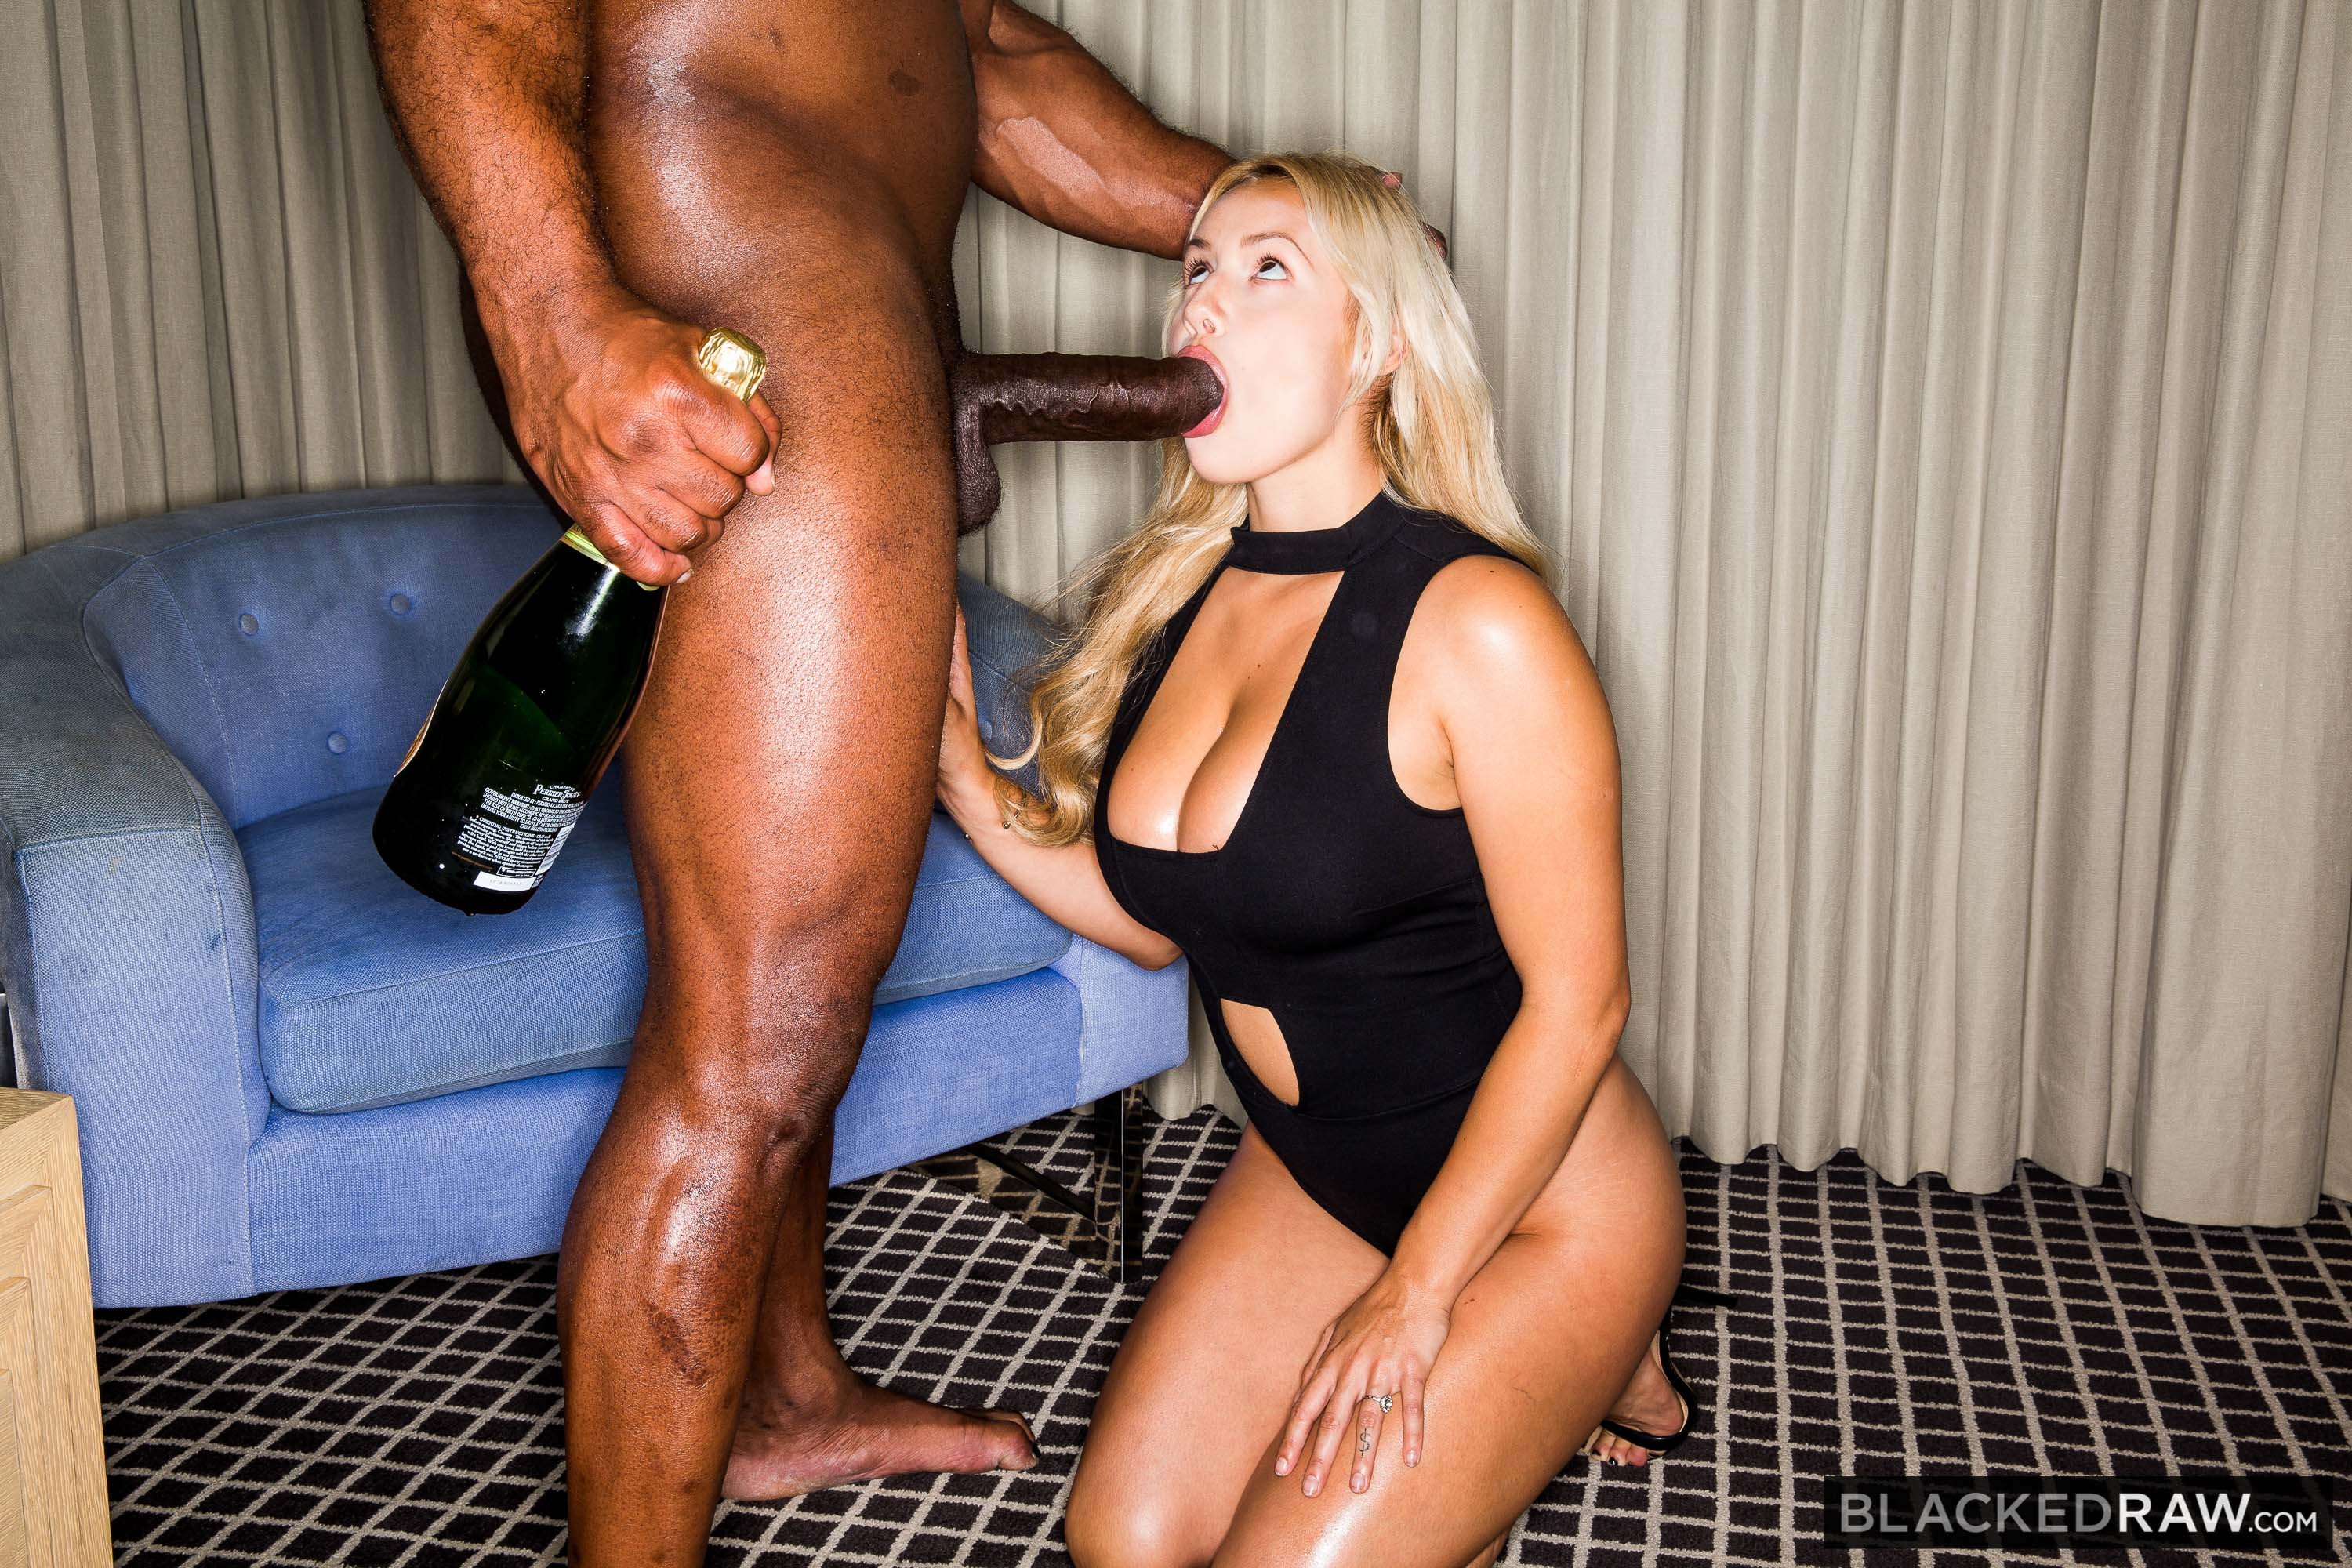 Karlee grey gets a facial and swollows 2